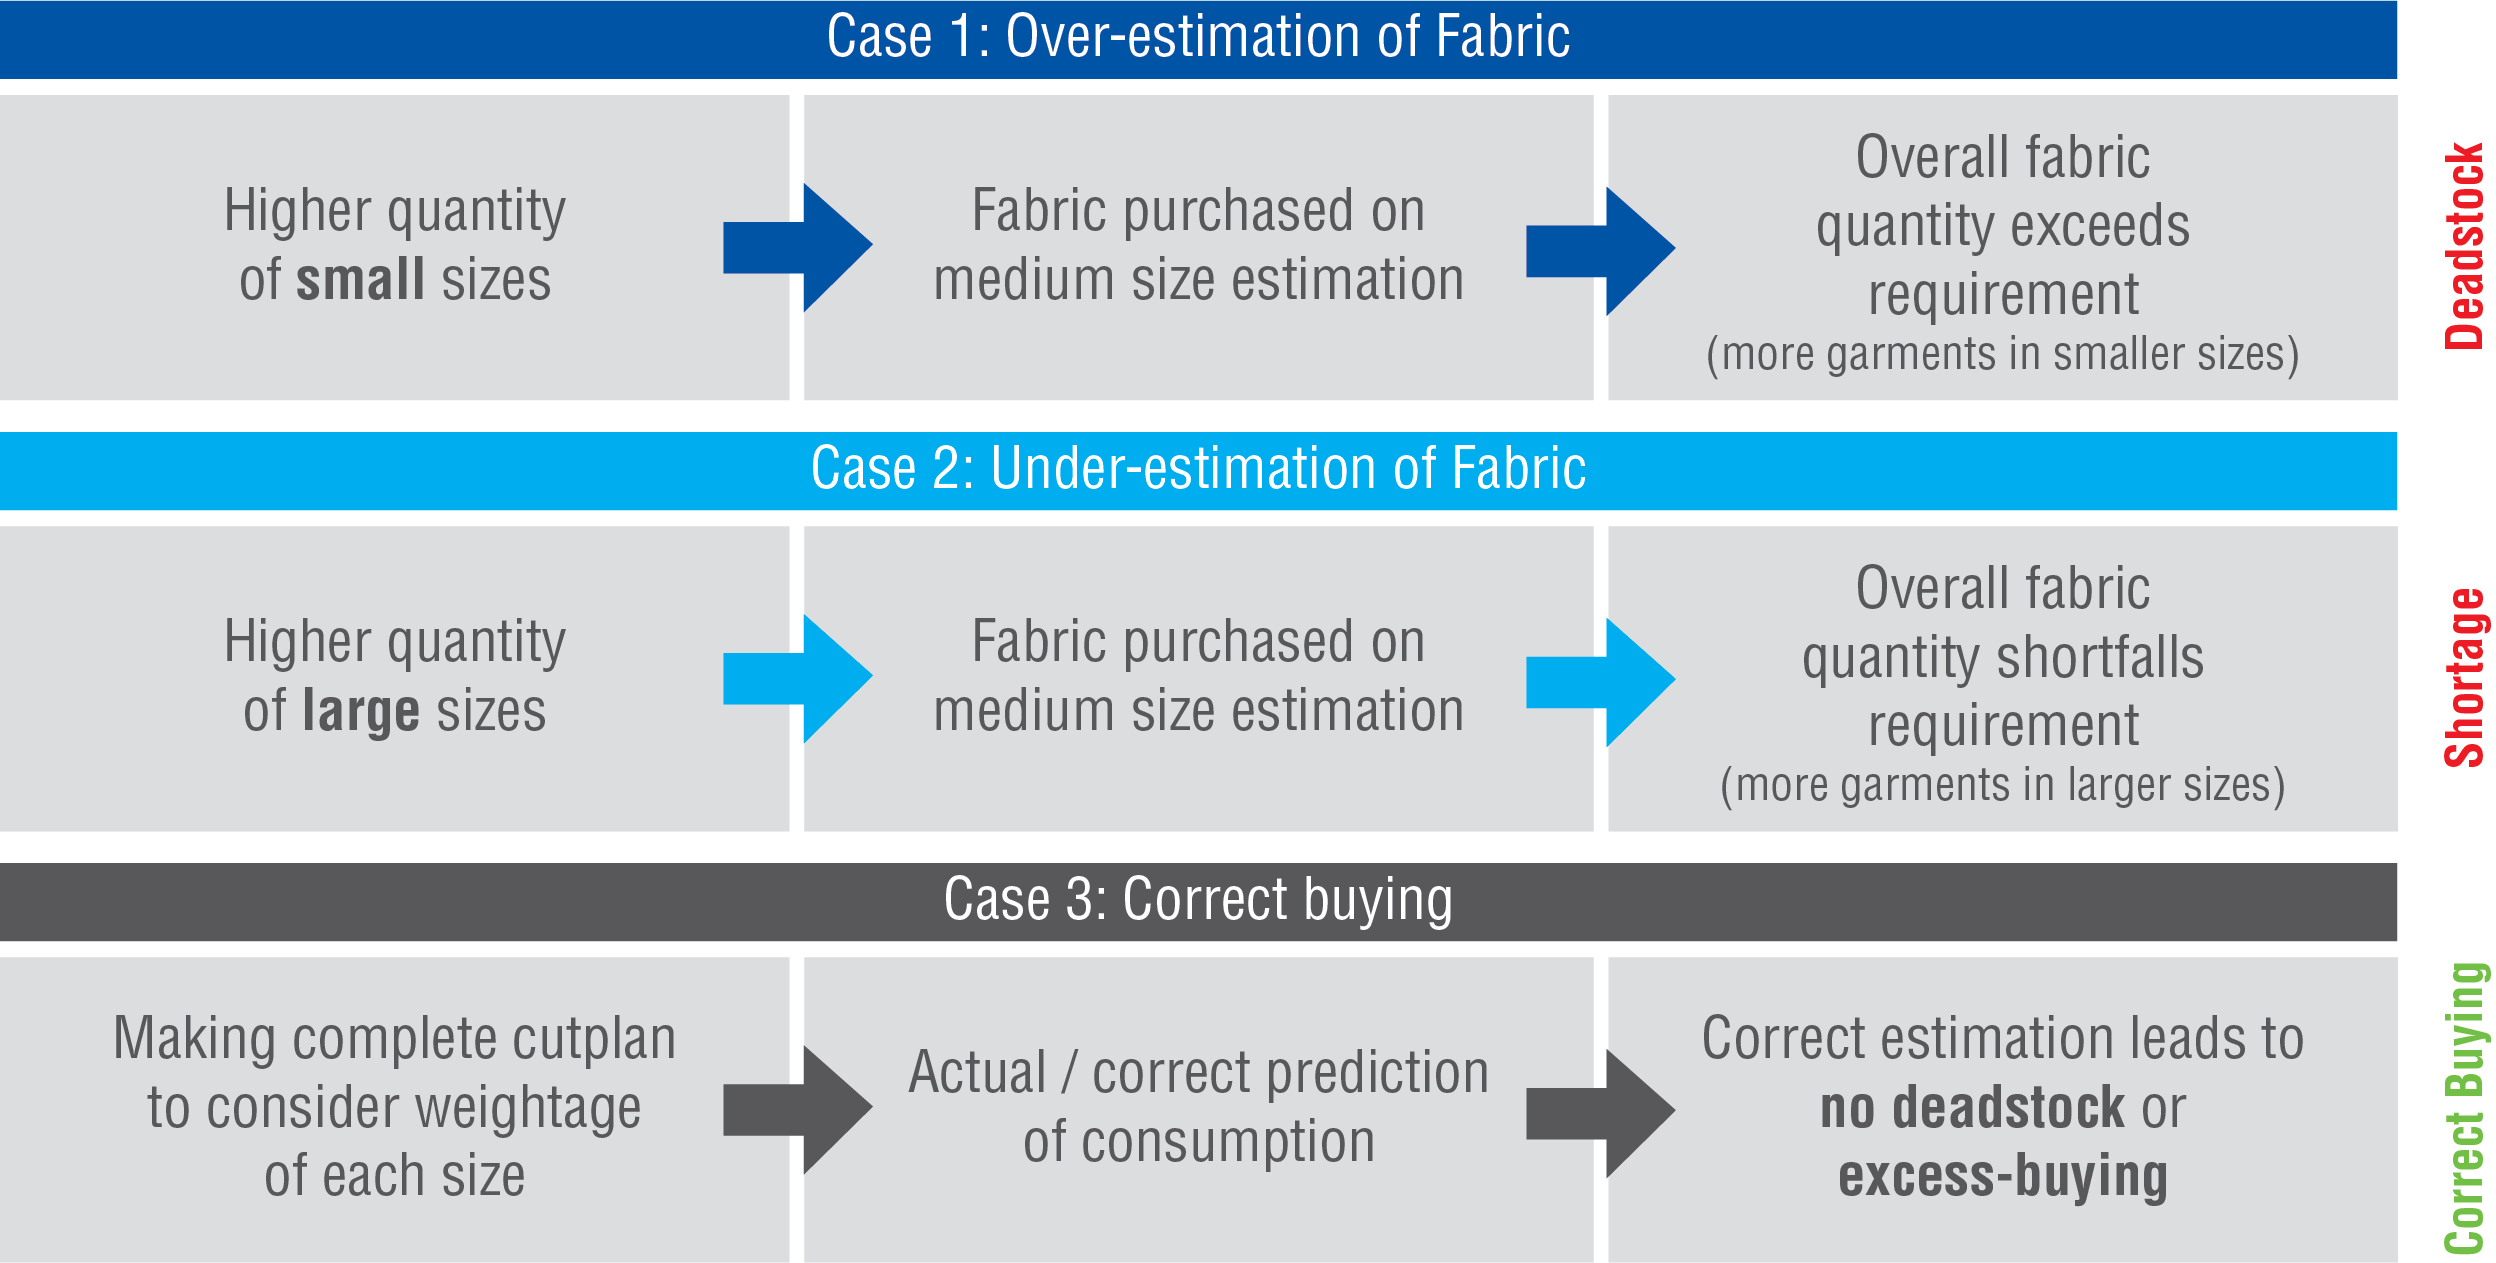 Infographic showing steps achieve correct fabric buying